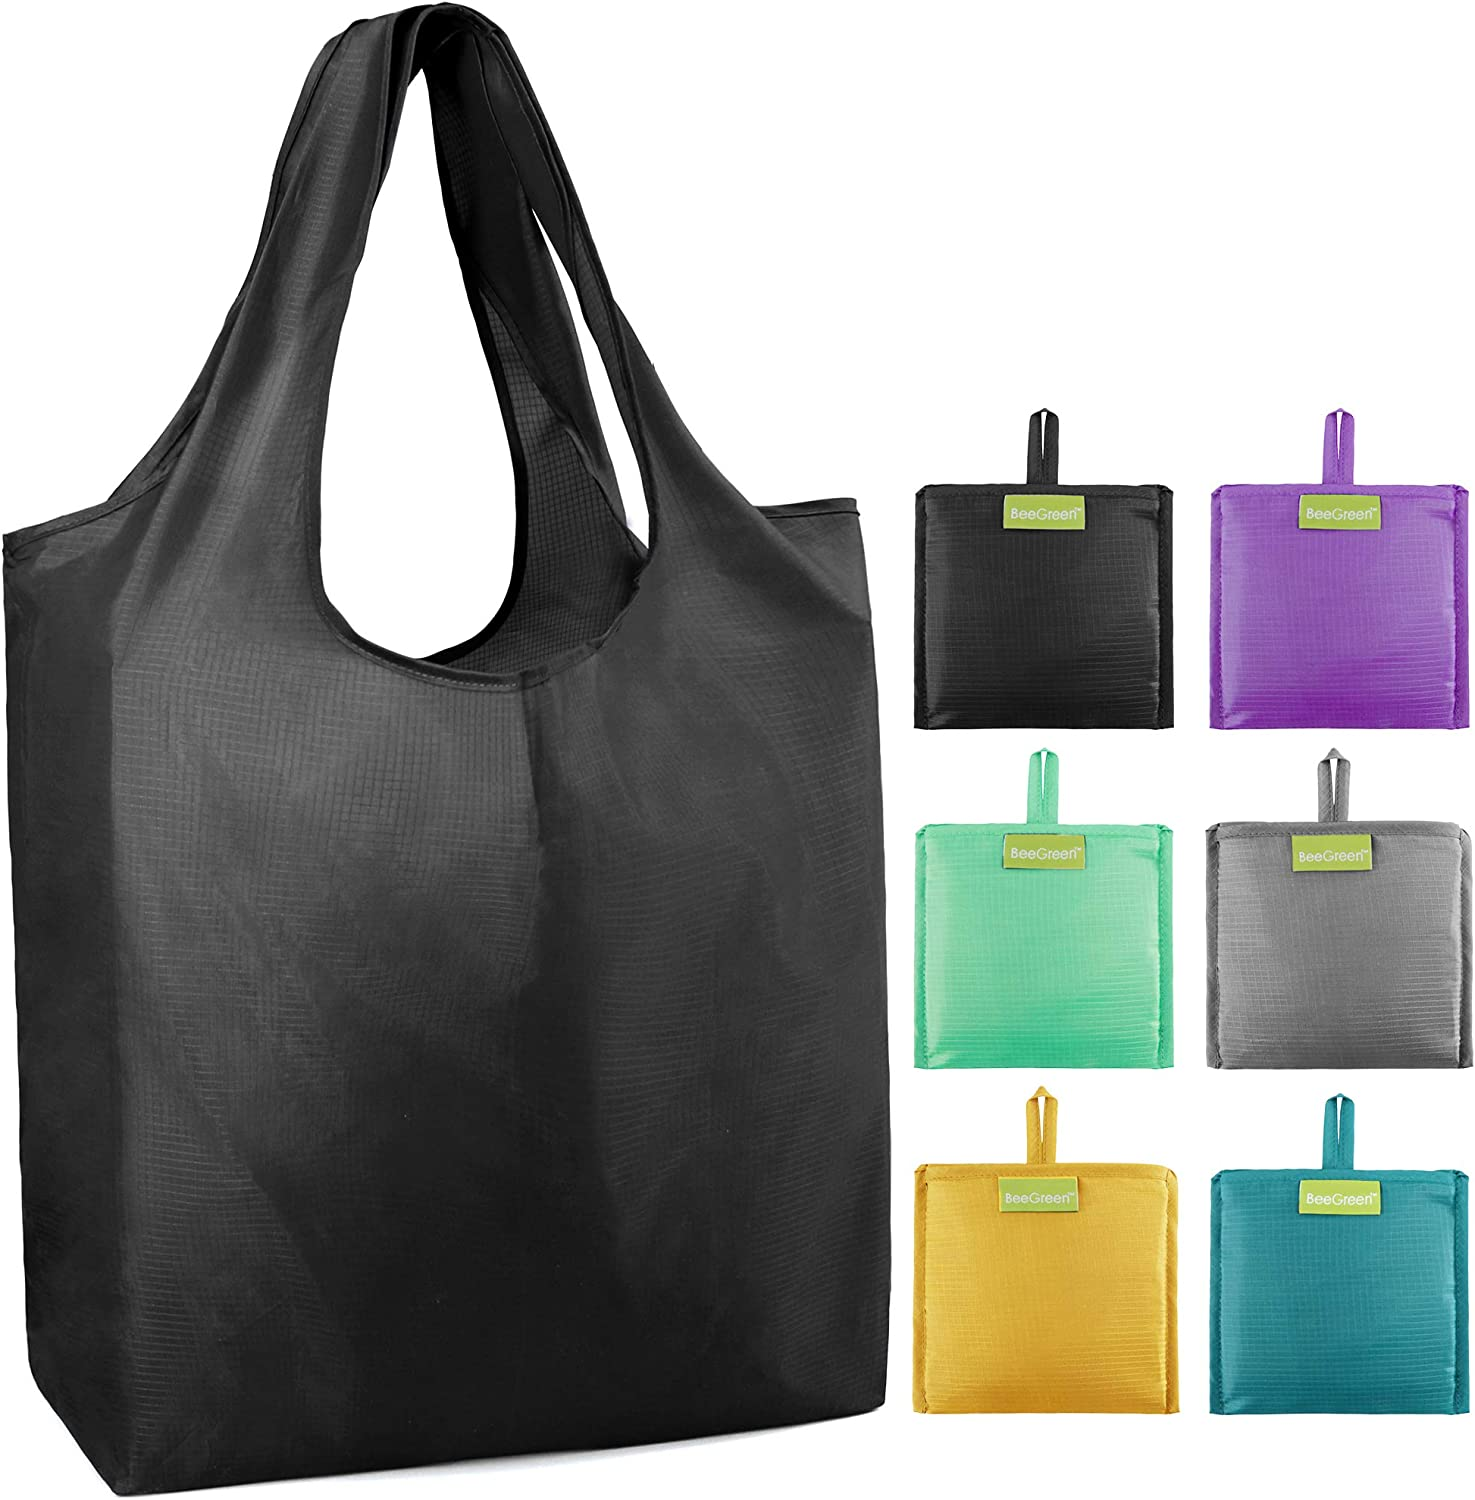 Reusable Grocery Shopping Bags 6 Pack Ripstop 50LBS Large Shopping Totes with Pouch Bulk Machine Washable Gift Bags Black Purple Gray Yellow Teal Mint Green